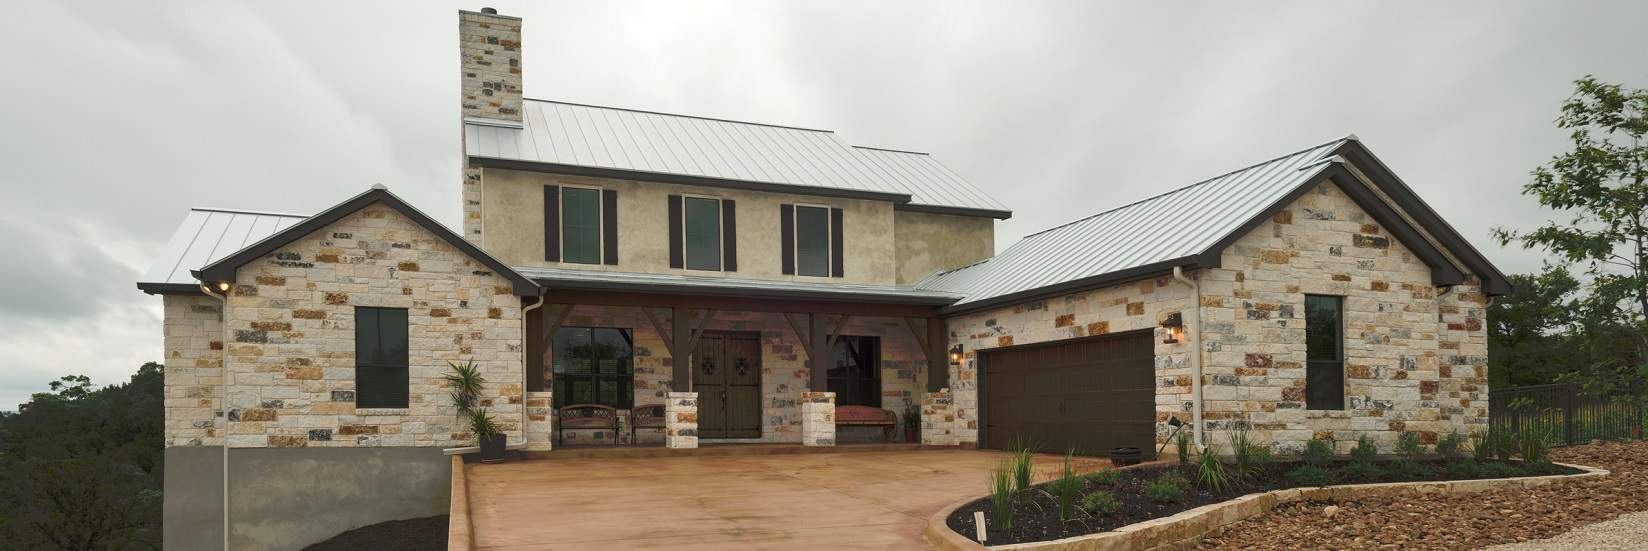 Custom home builder new braunfels san antonio hill Custom home plans texas